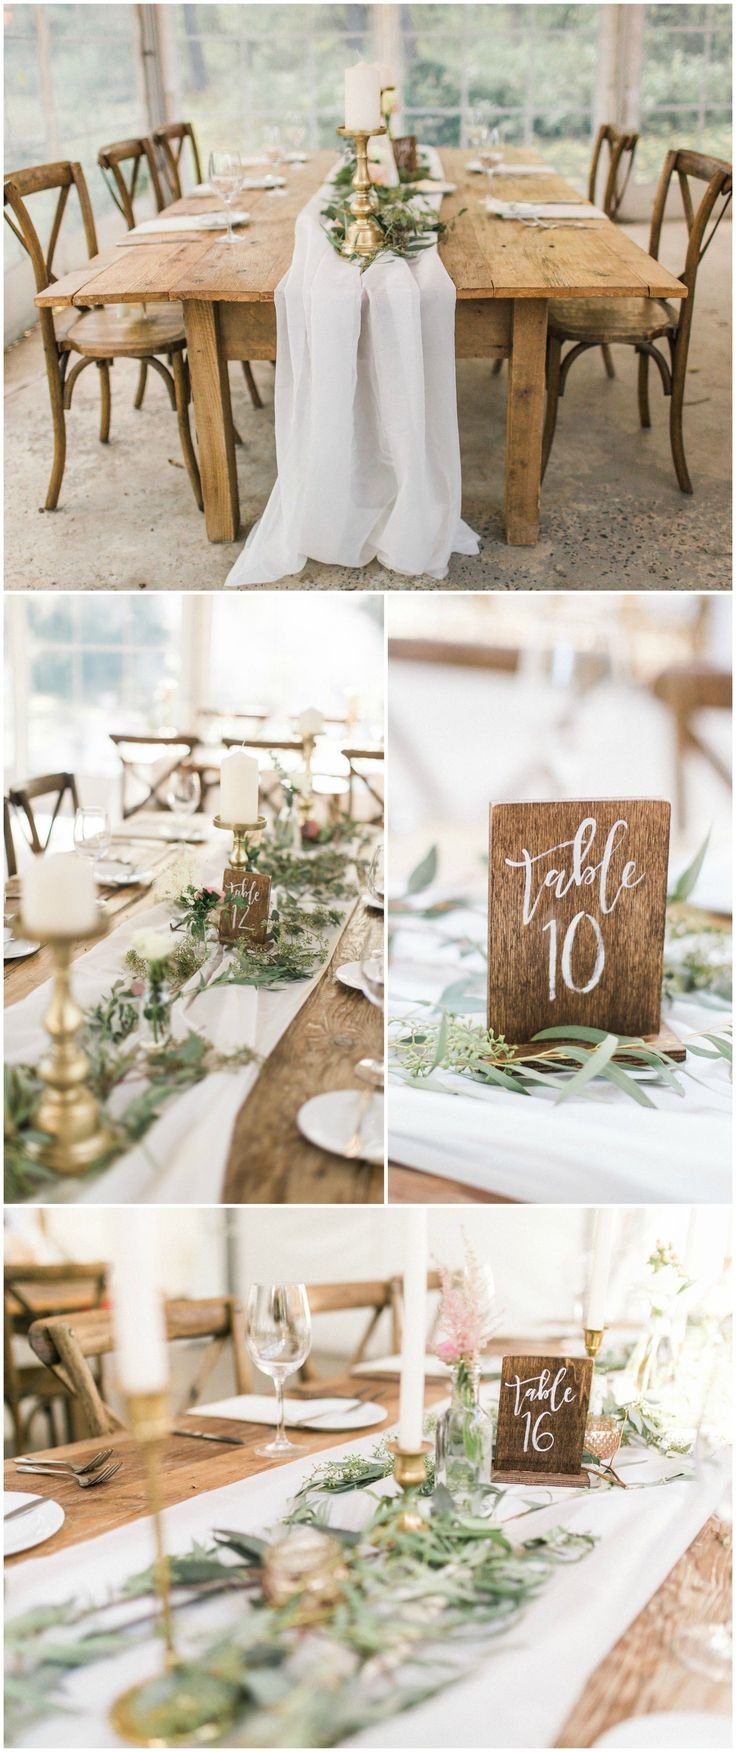 white wedding linens wedding linens Natural wedding reception wooden block table numbers cross back chairs long wood